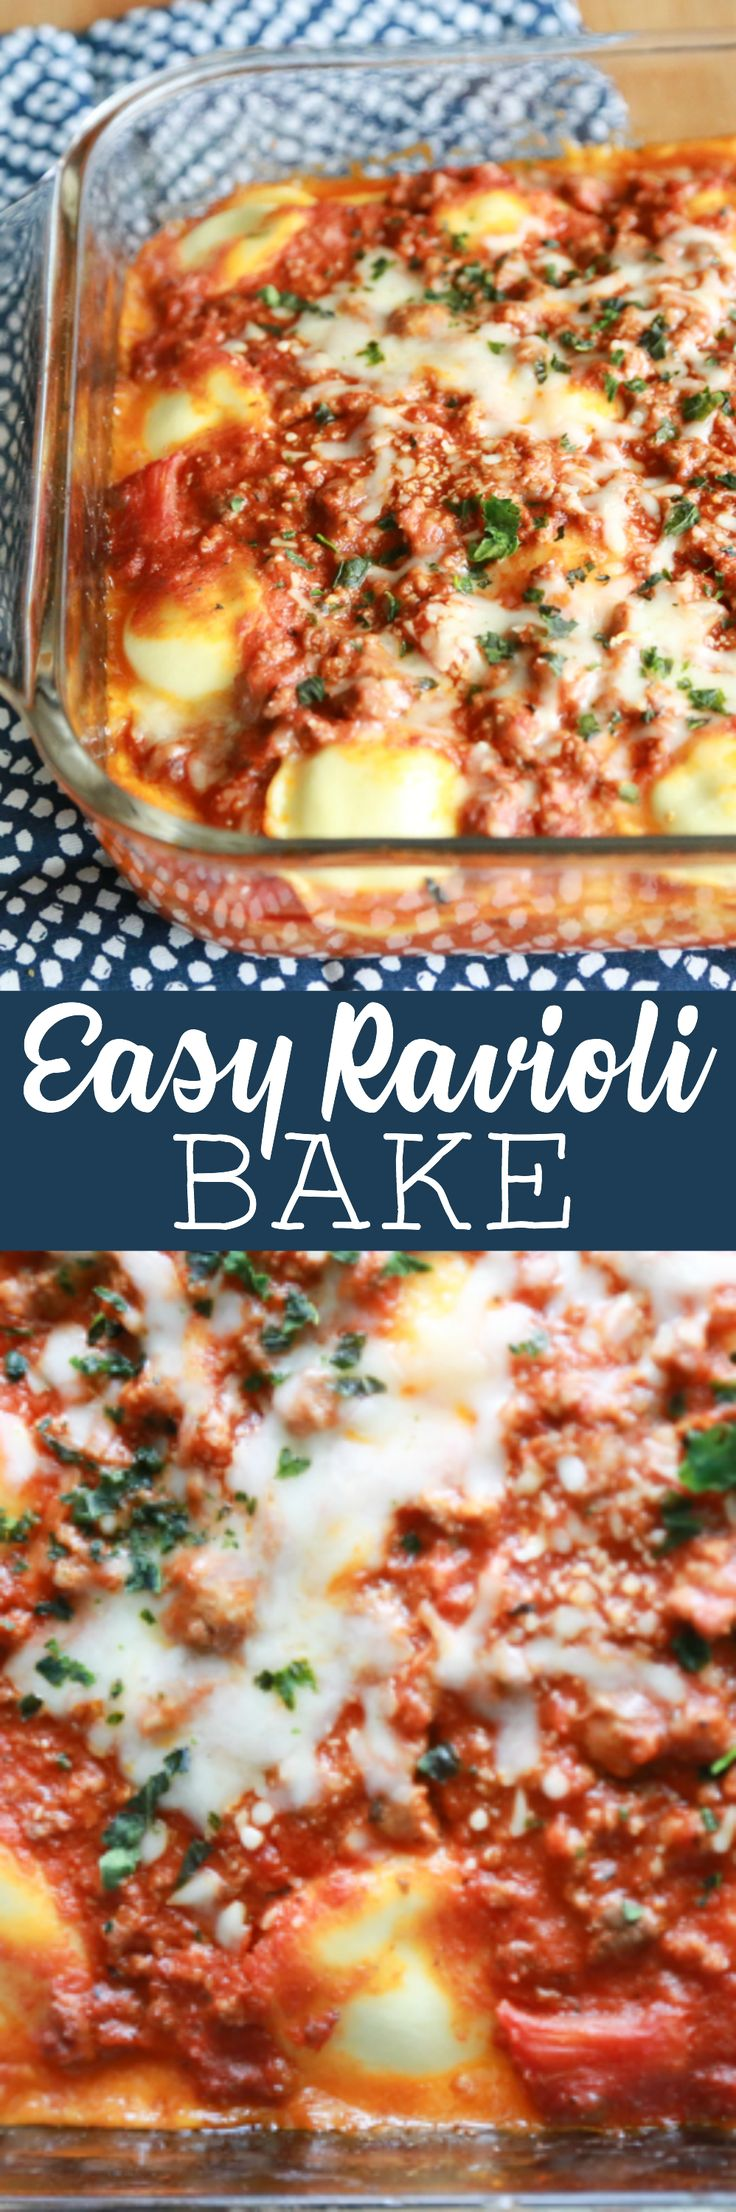 Spend less time in the kitchen this year and more time with your family with this Easy Ravioli Bake recipe.